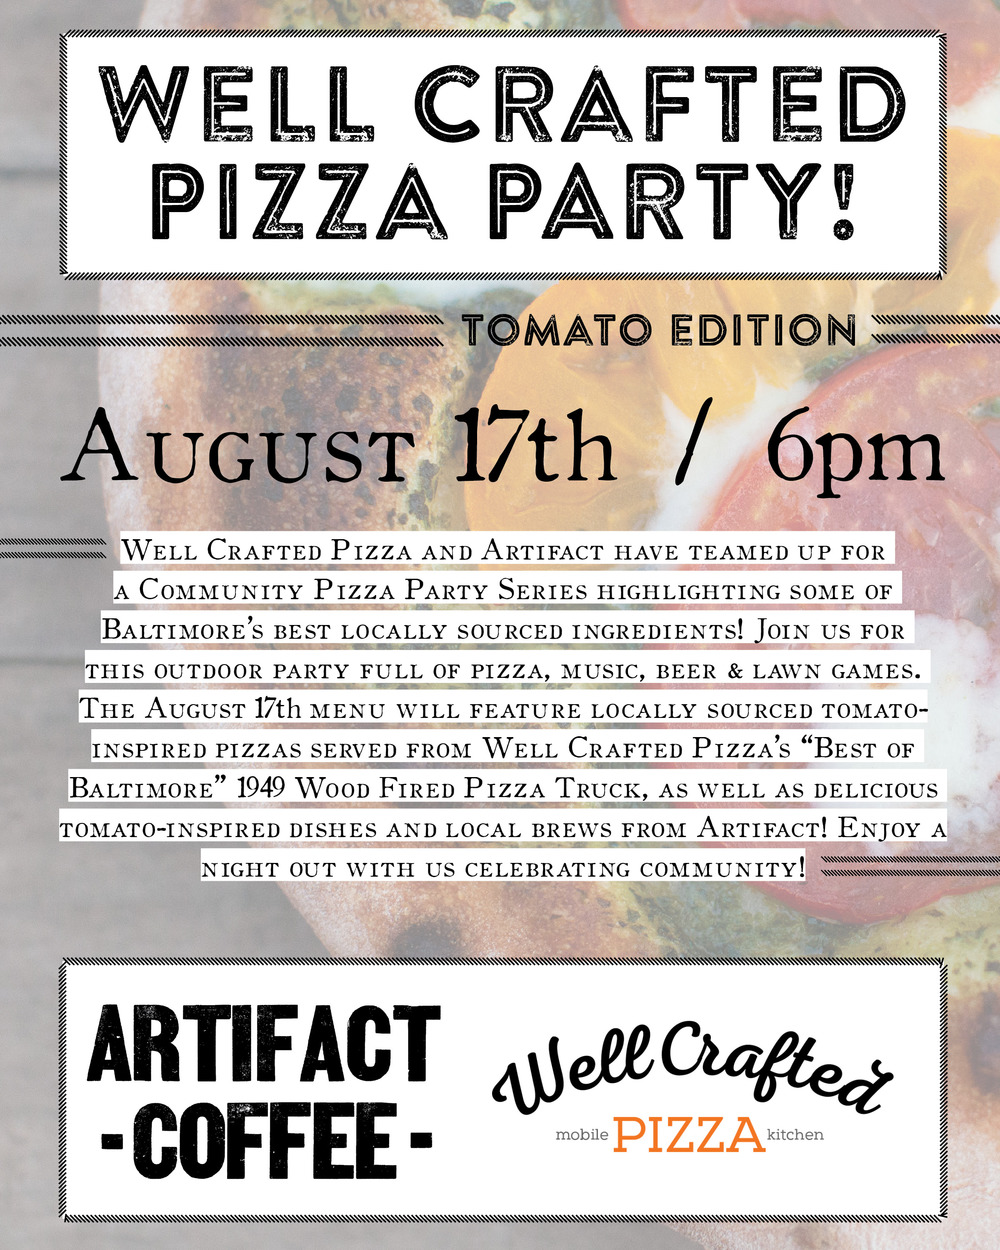 Well Crafted Pizza Party flyer for Artifact  Design